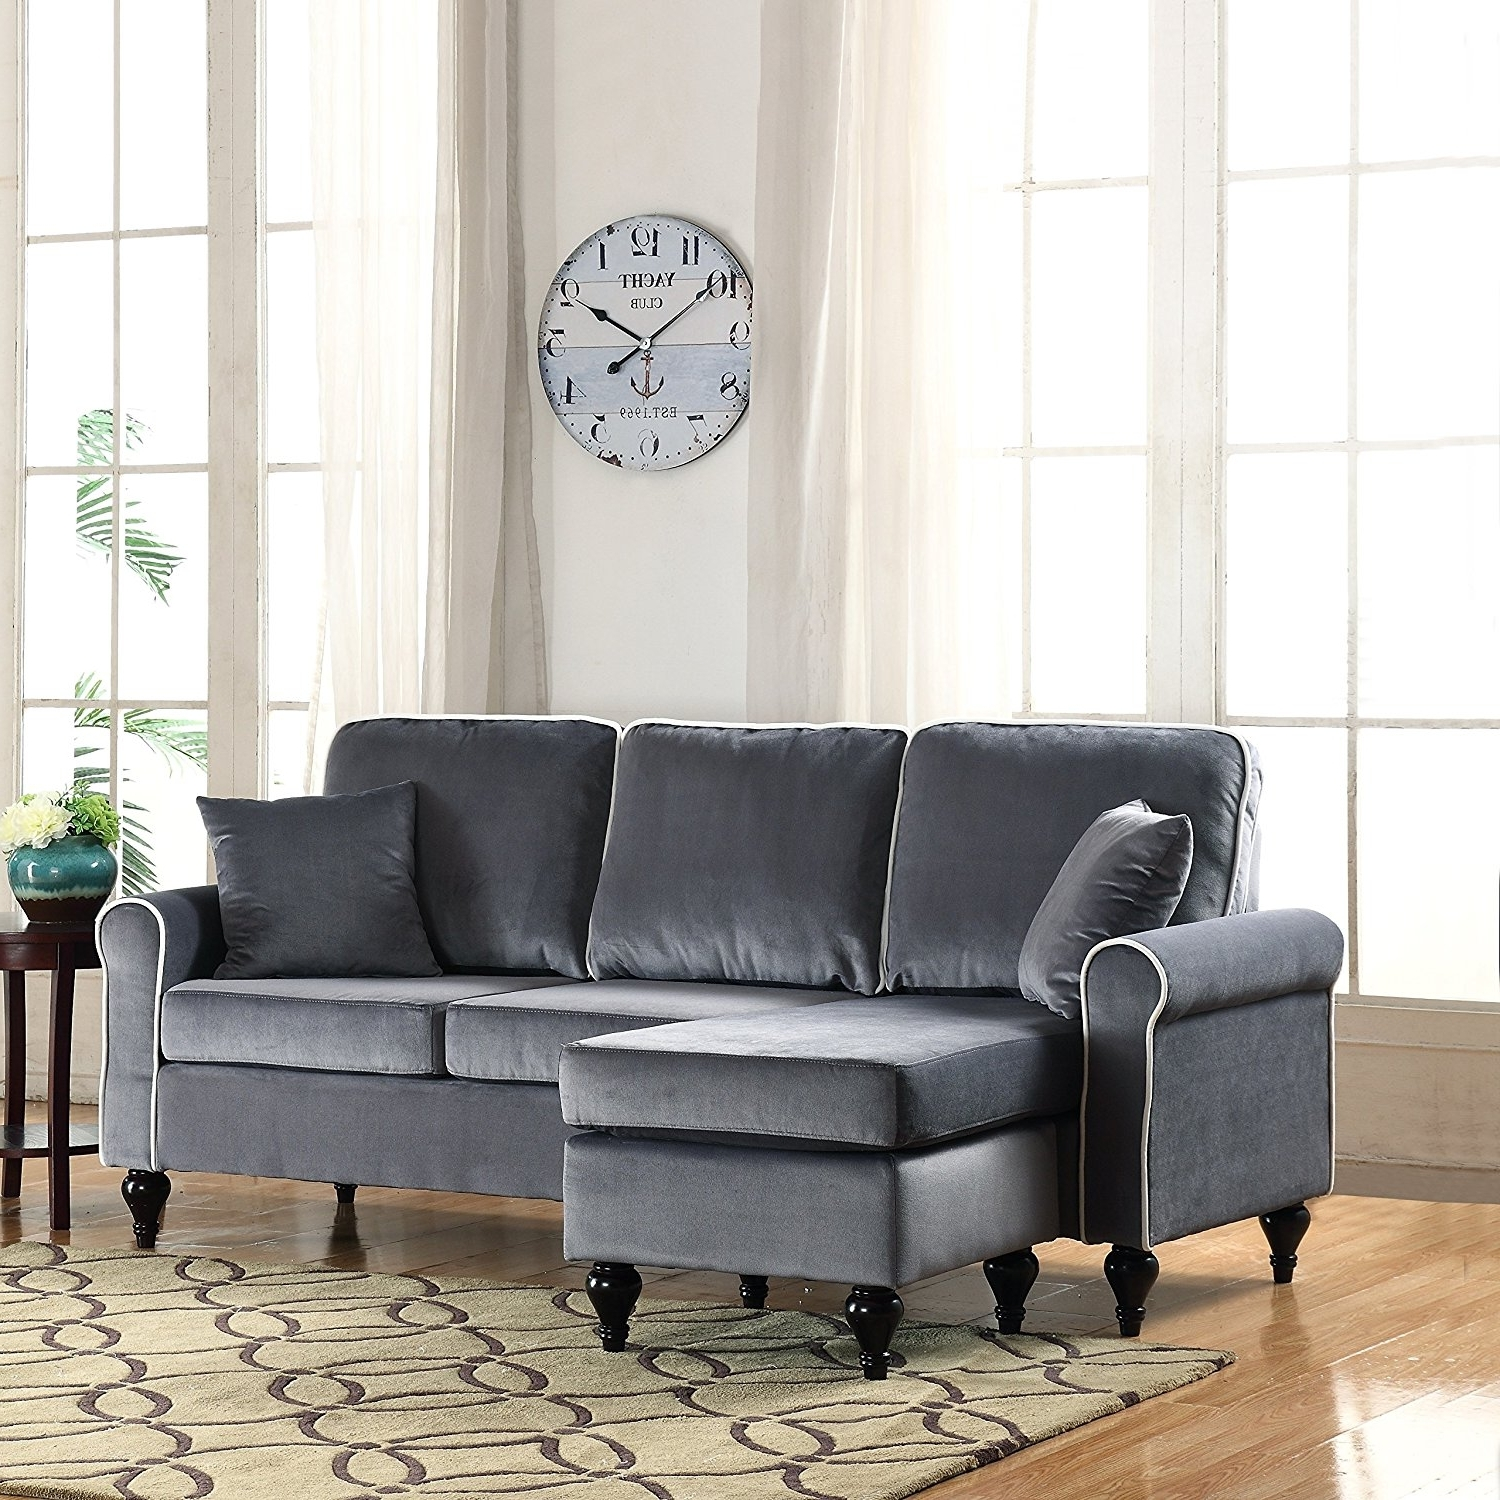 Velvet Sectional Sofas With Chaise Throughout Most Recently Released Amazon: Classic And Traditional Small Space Velvet Sectional (View 6 of 15)